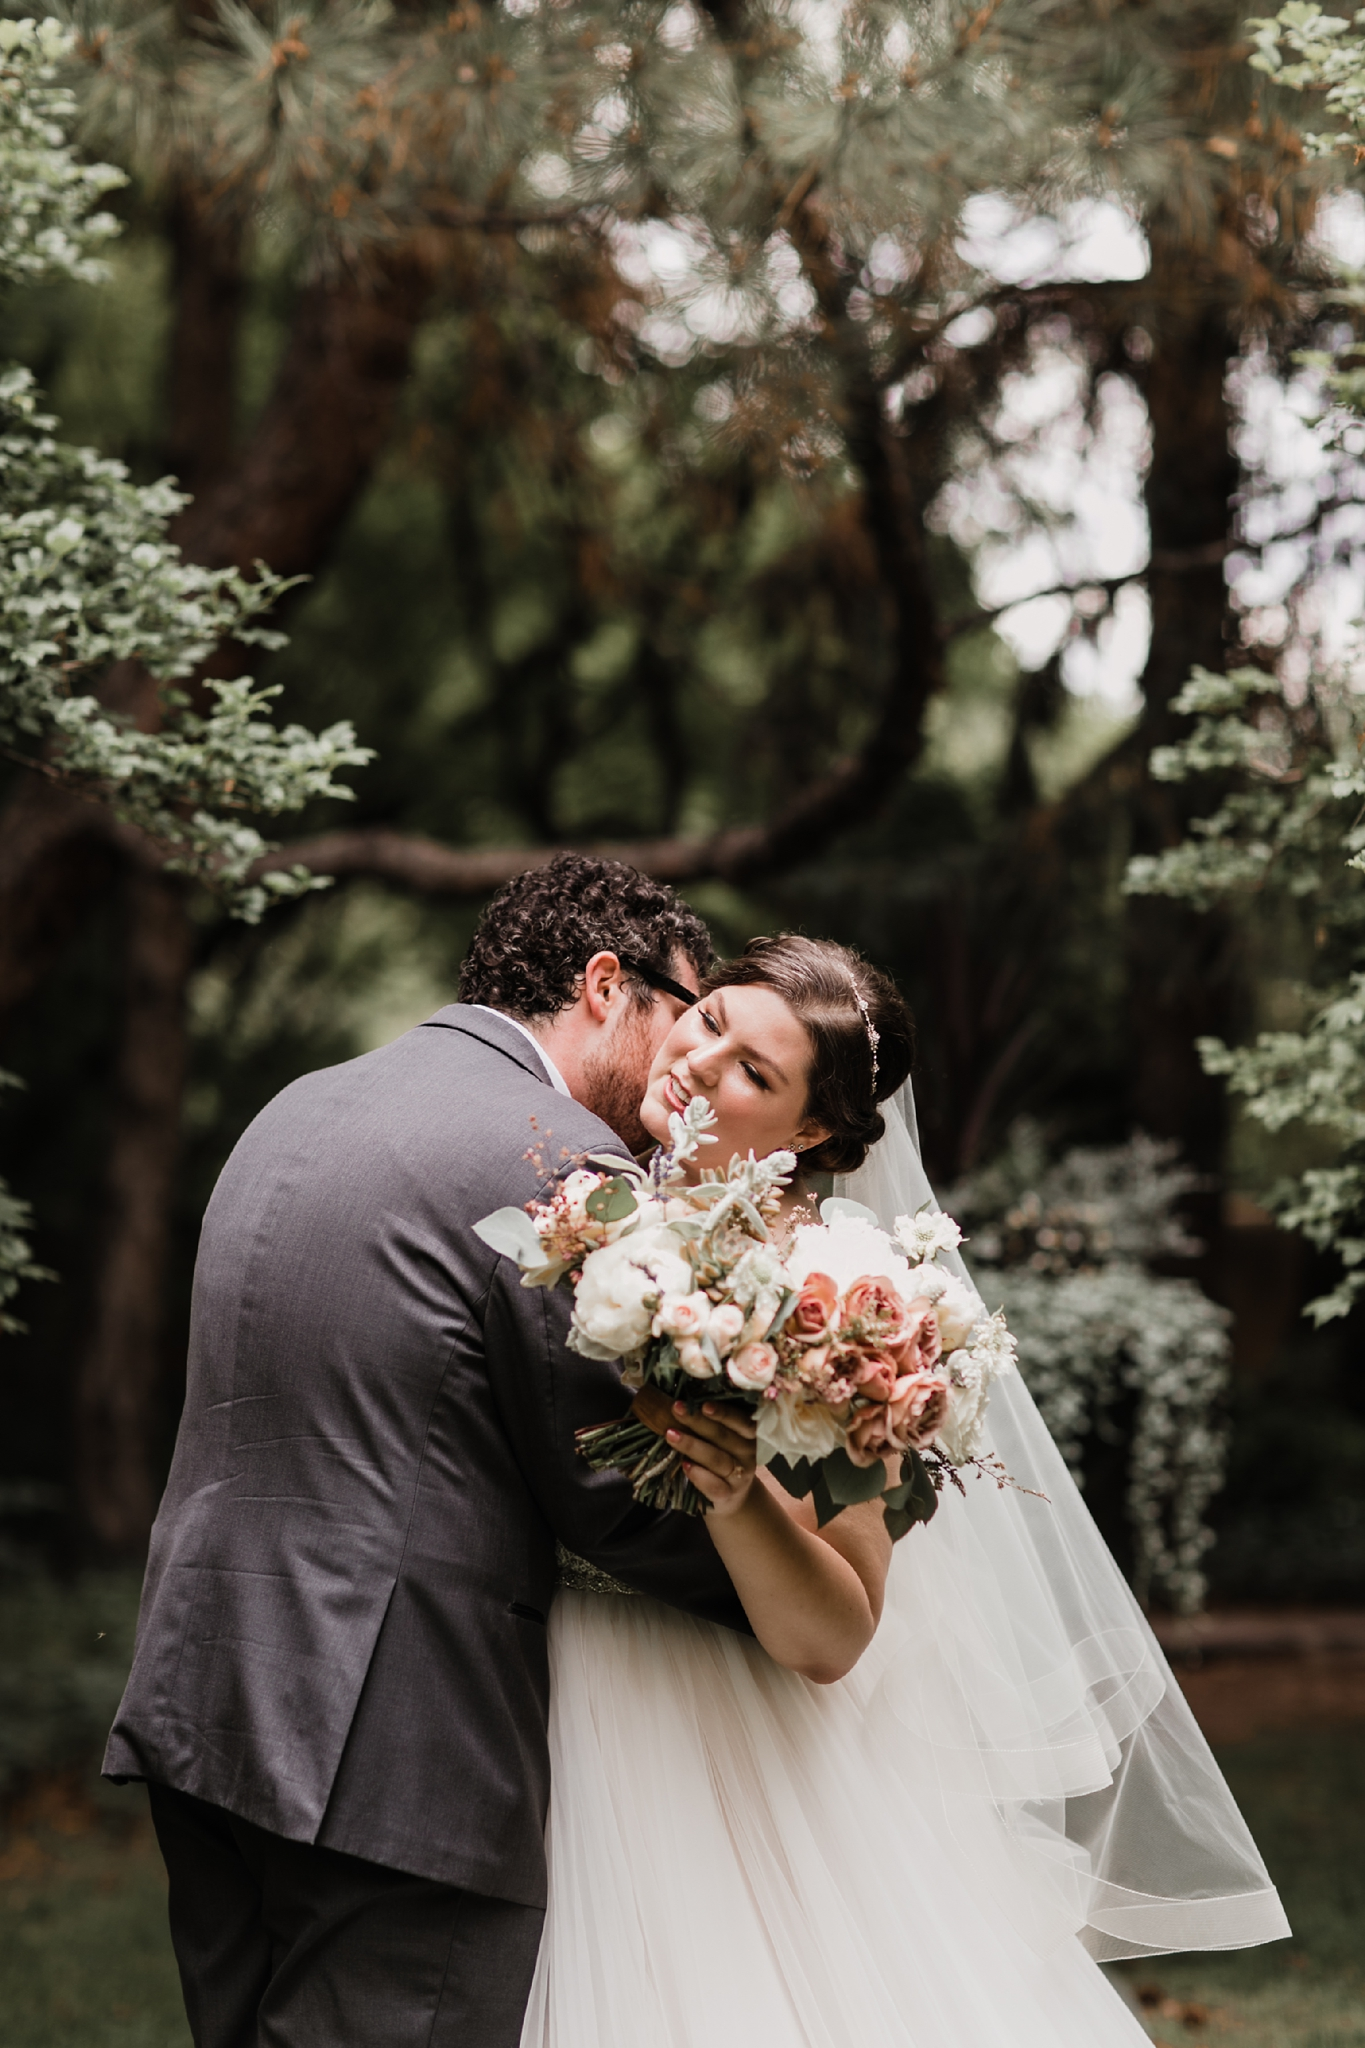 Alicia+lucia+photography+-+albuquerque+wedding+photographer+-+santa+fe+wedding+photography+-+new+mexico+wedding+photographer+-+new+mexico+wedding+-+summer+wedding+-+los+poblanos+wedding+-+albuquerque+wedding_0025.jpg